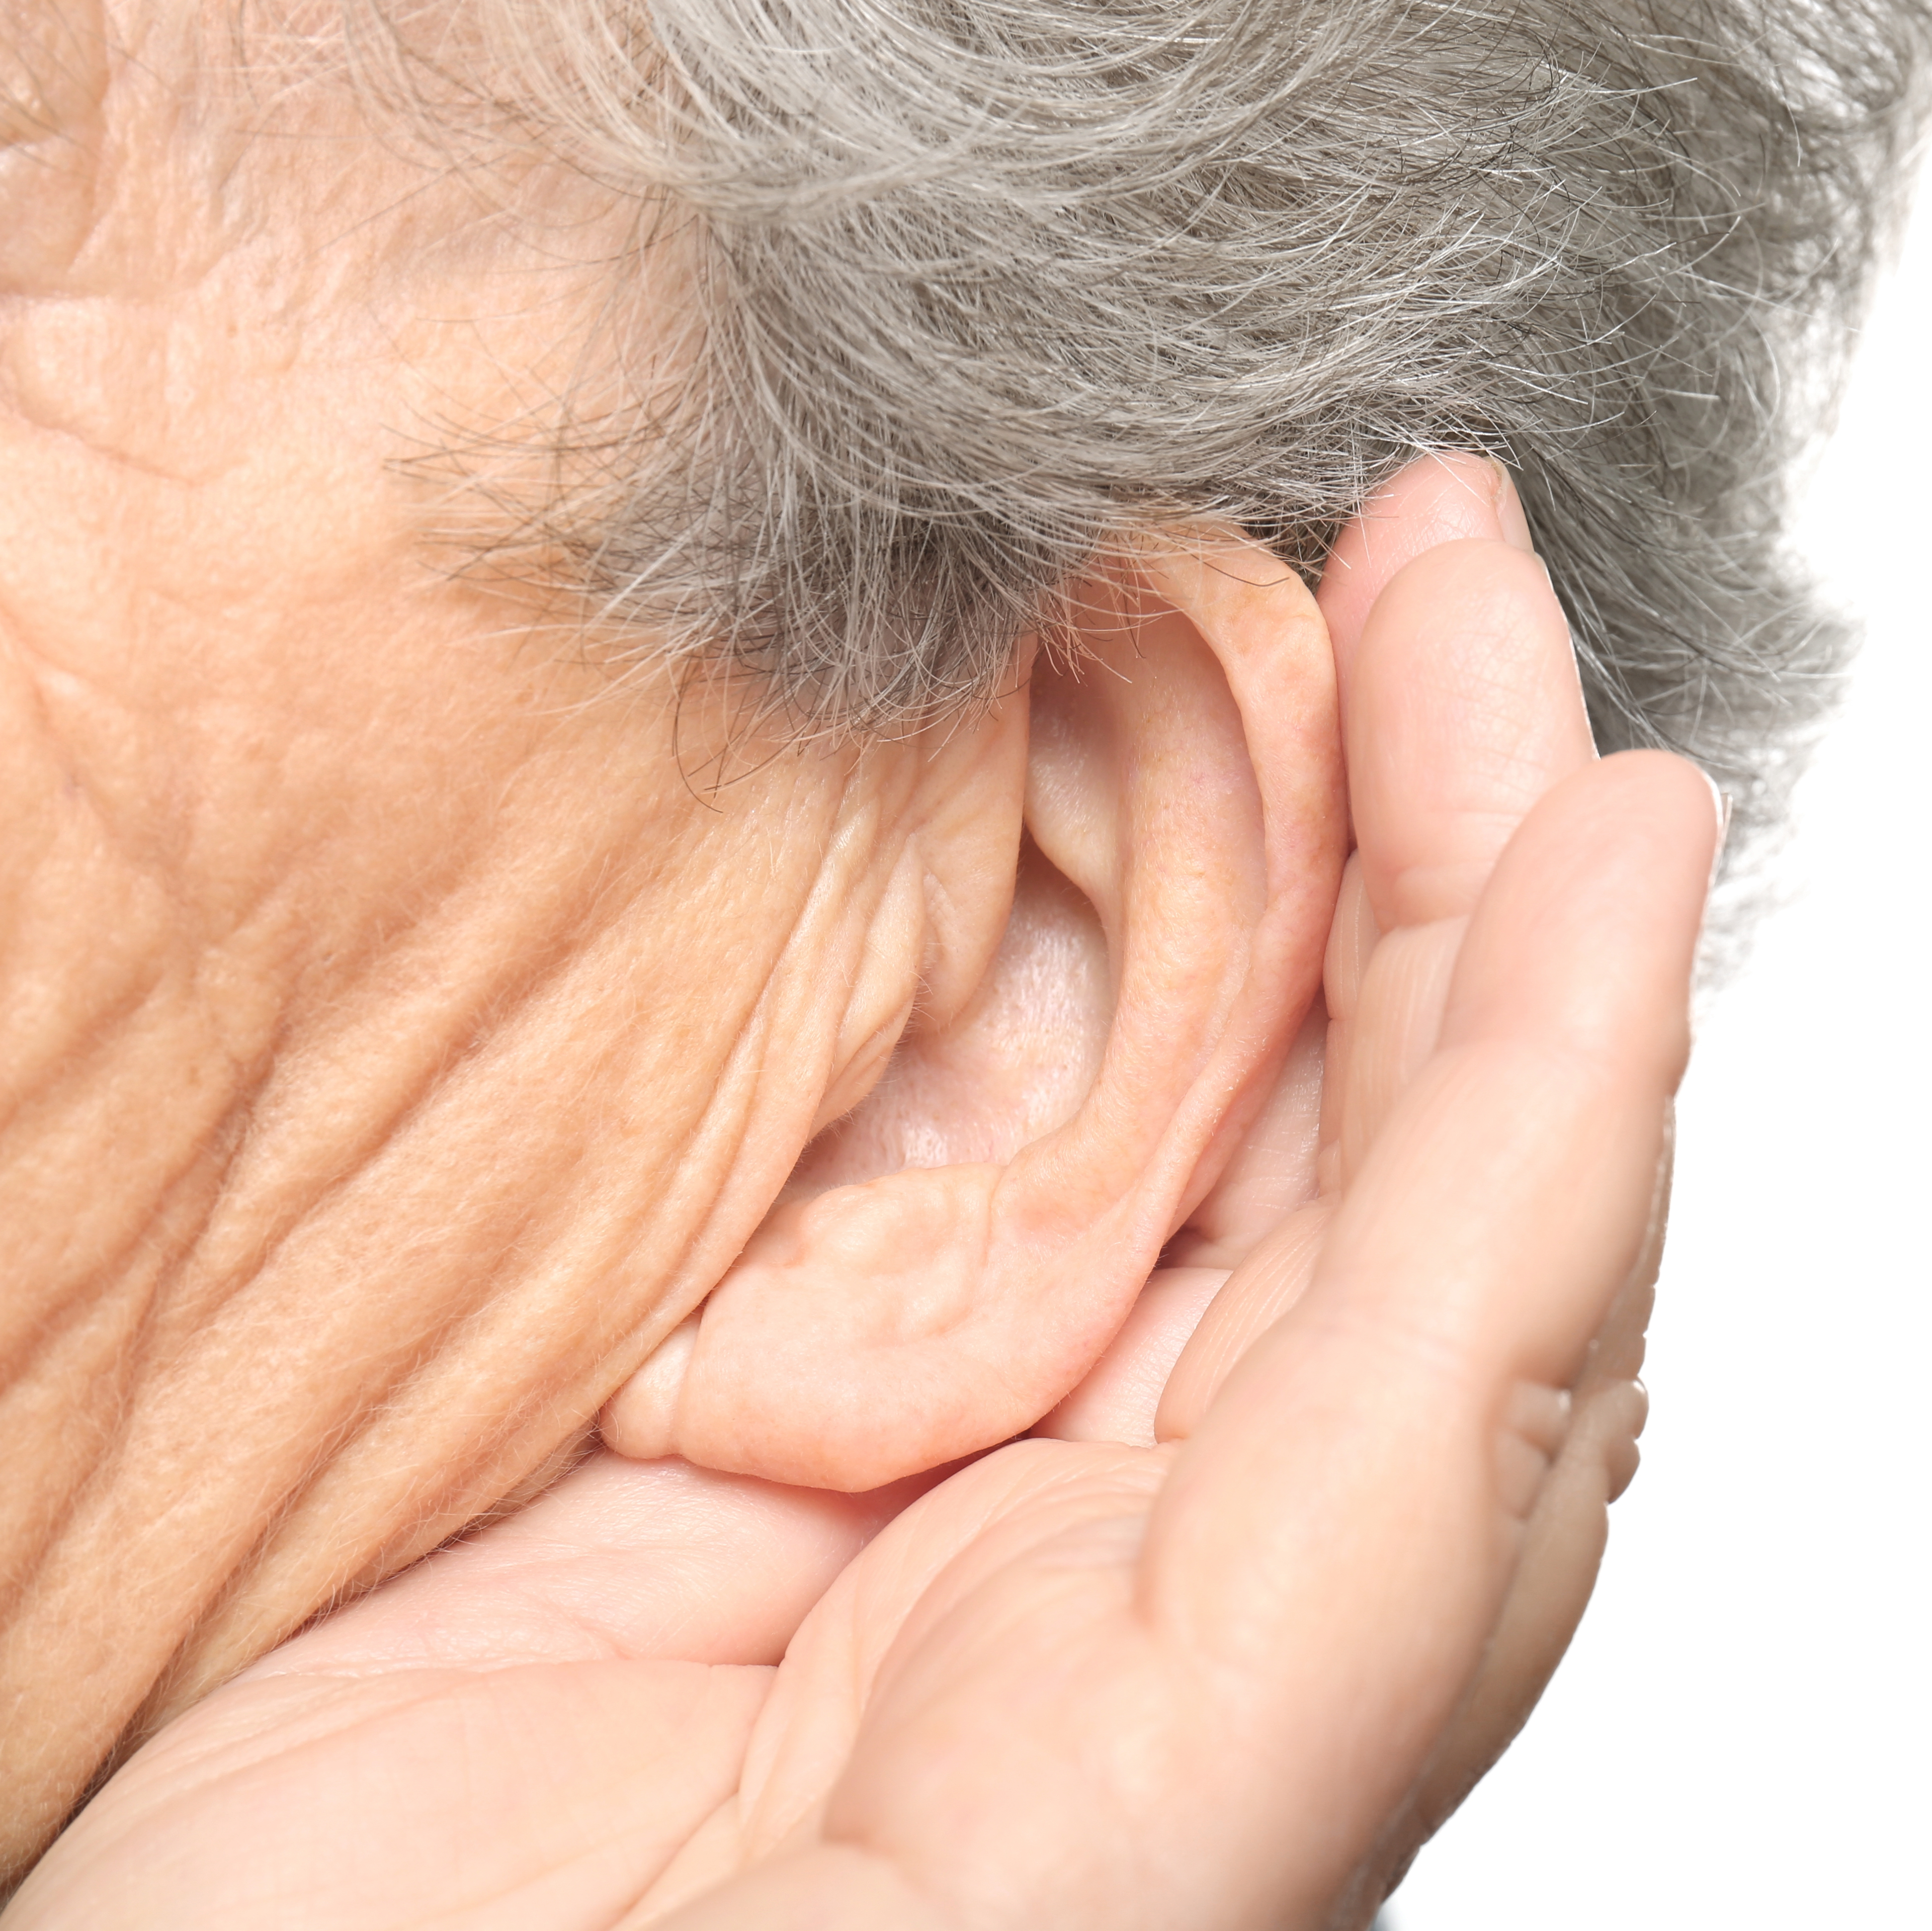 an older or middle-aged person hard of hearing, holding their ear and trying to listen